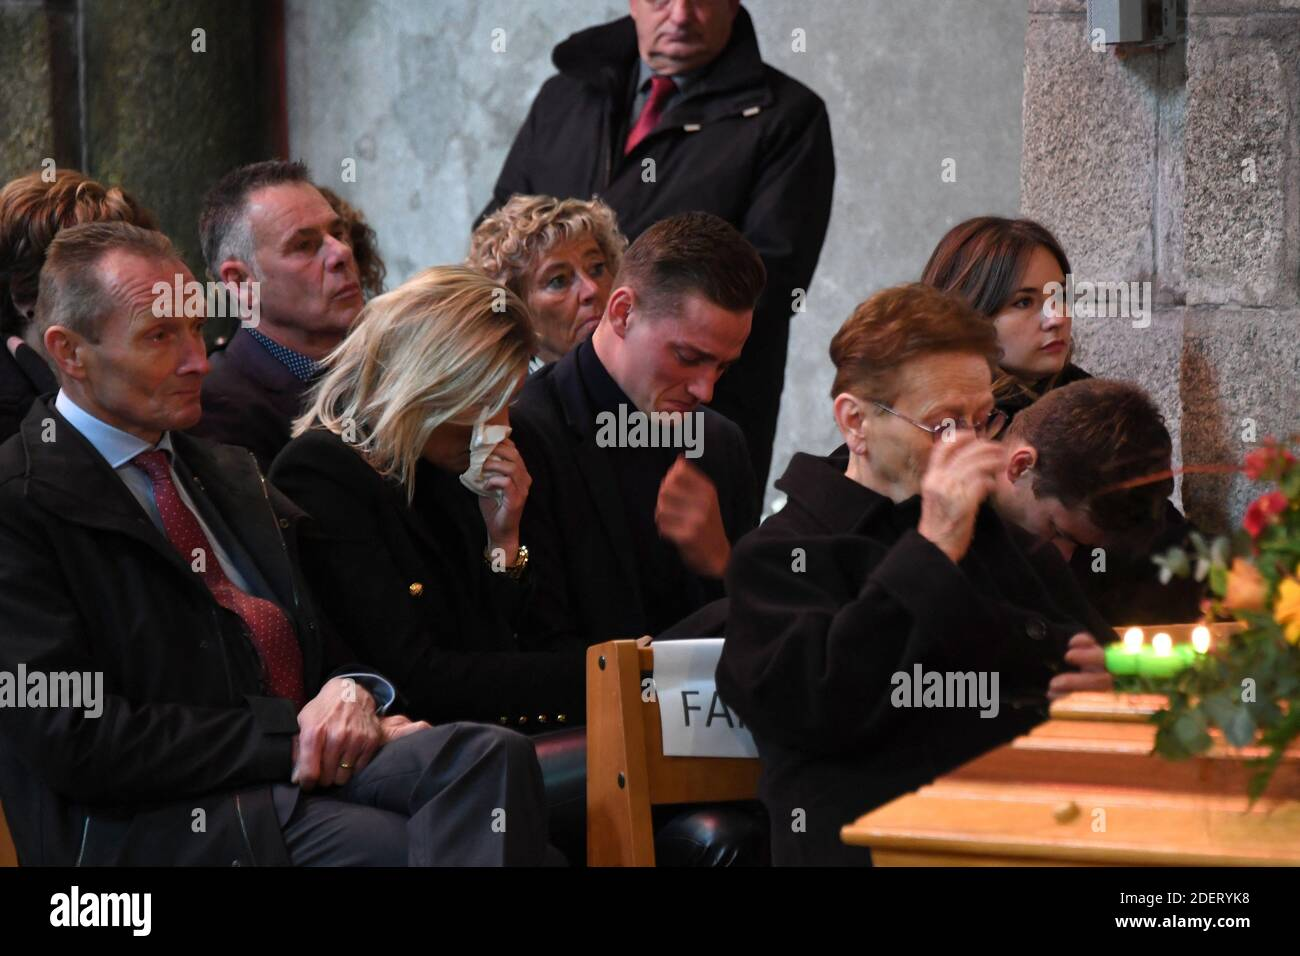 https www alamy com late cyclist raymond poulidors grandson dutch cyclist mathieu van der poel c flanked by his girlfriend porsche belgiums assistant roxanne bertels reacts as he sits behind pulidors widow gisele poulidor during the funerals of the french champion raymond poulidor in saint leonard de noblat on november 19 2019 french cyclist raymond poulidor died on november 13 2019 at the age of 83 photo by mehdi fedouach poolabacapresscom image387759884 html